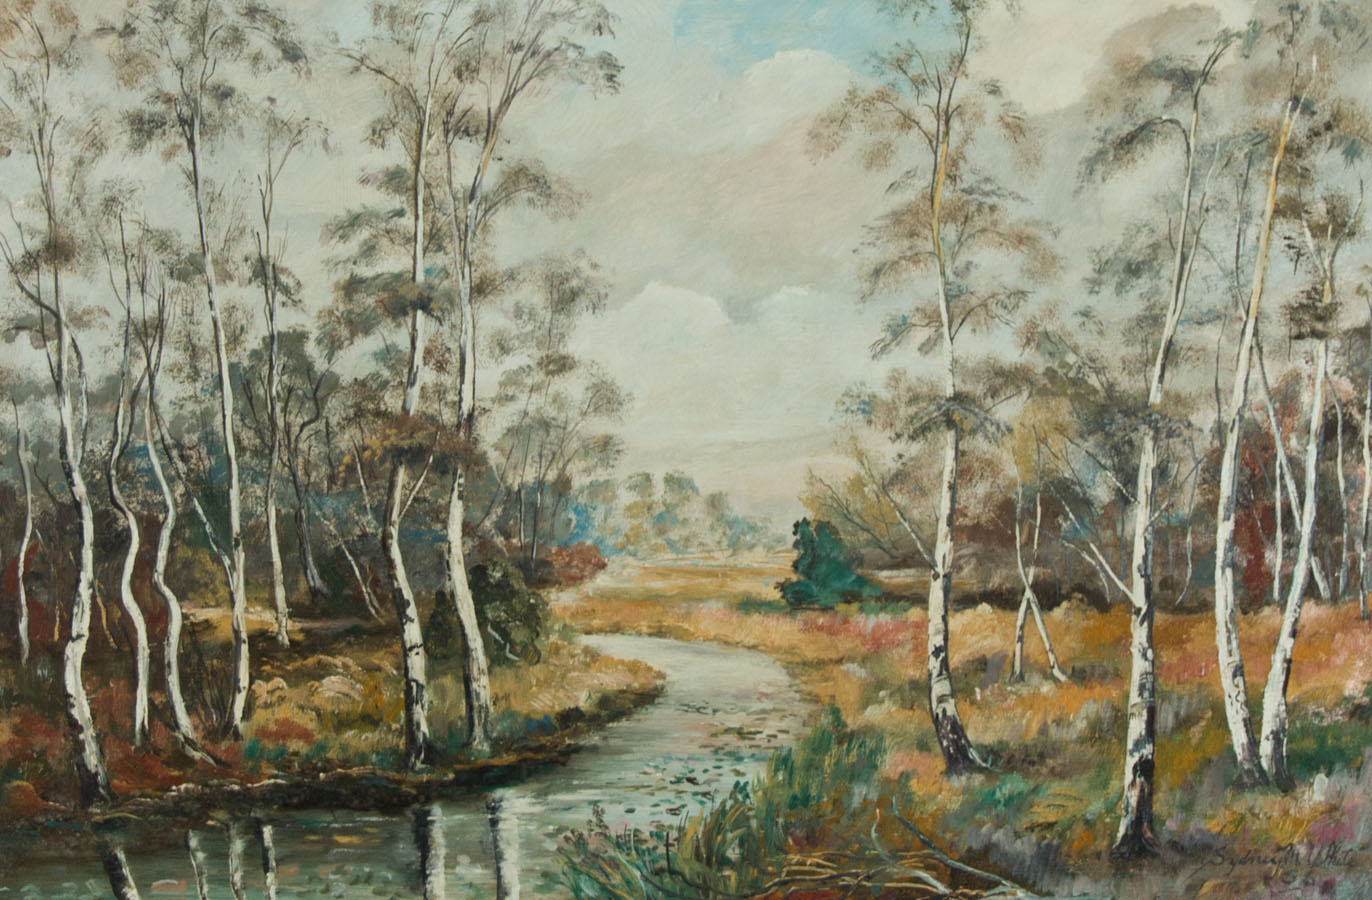 Sydney M. White - 1956 Oil, River Landscape with Silver Birch TreesZoom Sydney M. White - 1956 Oil, River Landscape with Silver Birch Trees          New Sydney M. White - 1956 Oil, River Landscape with Silver Birch Trees